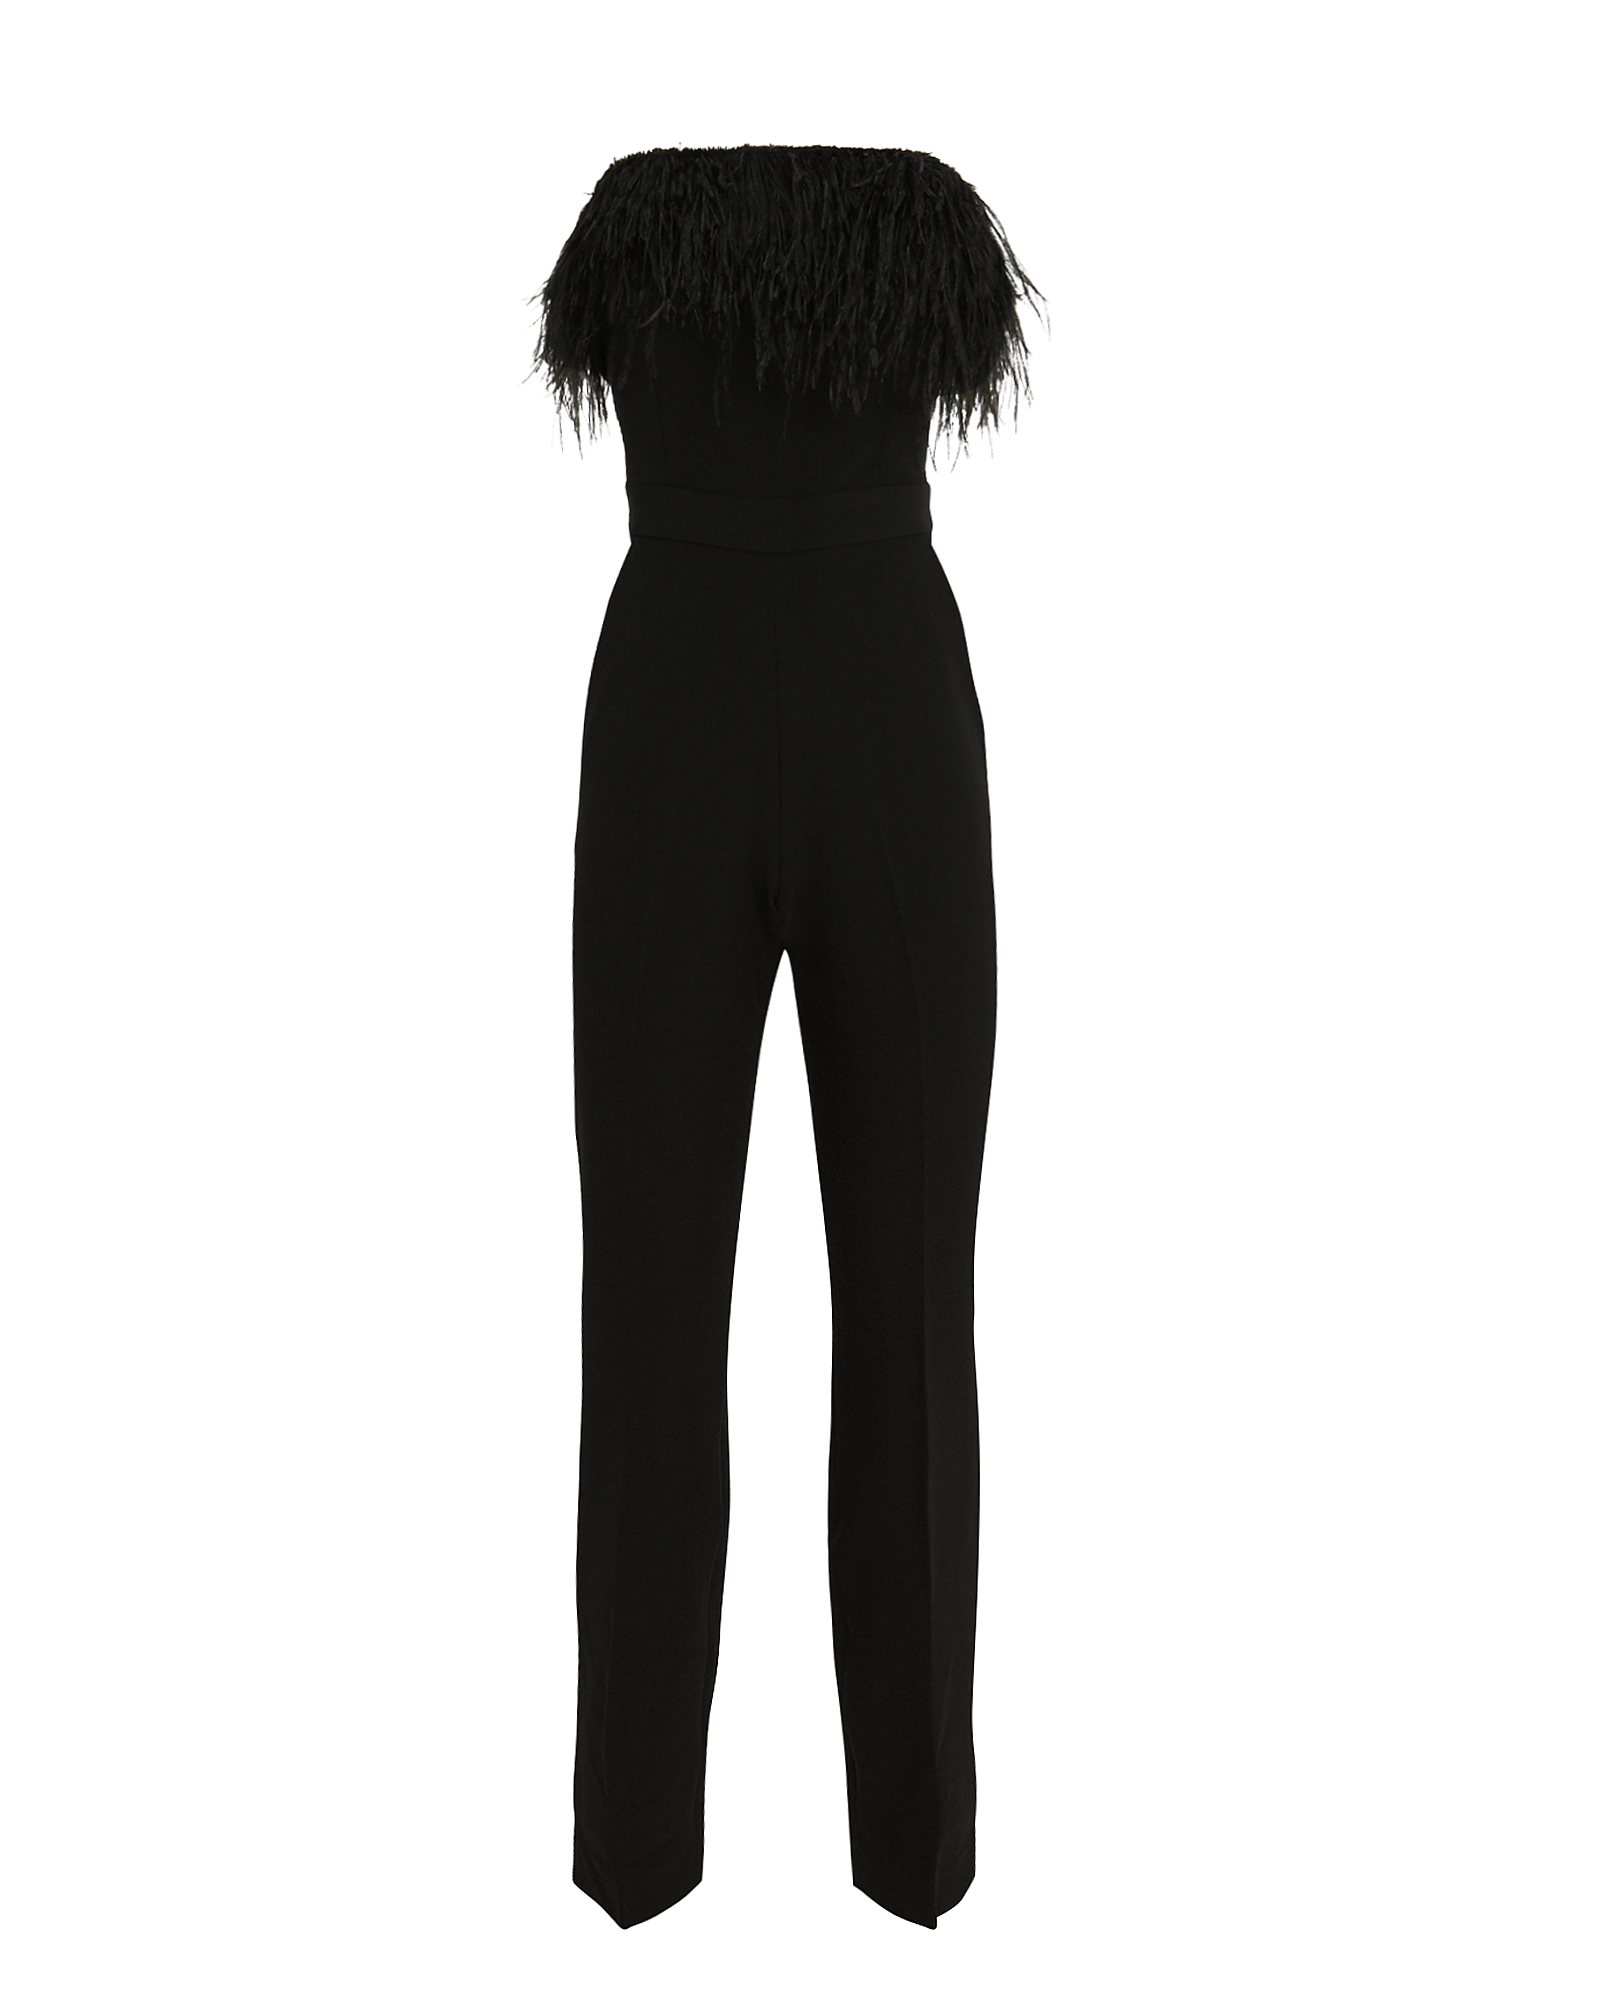 SAYLOR Straight-Leg Strapless Jumpsuit With Feather Trim in Black